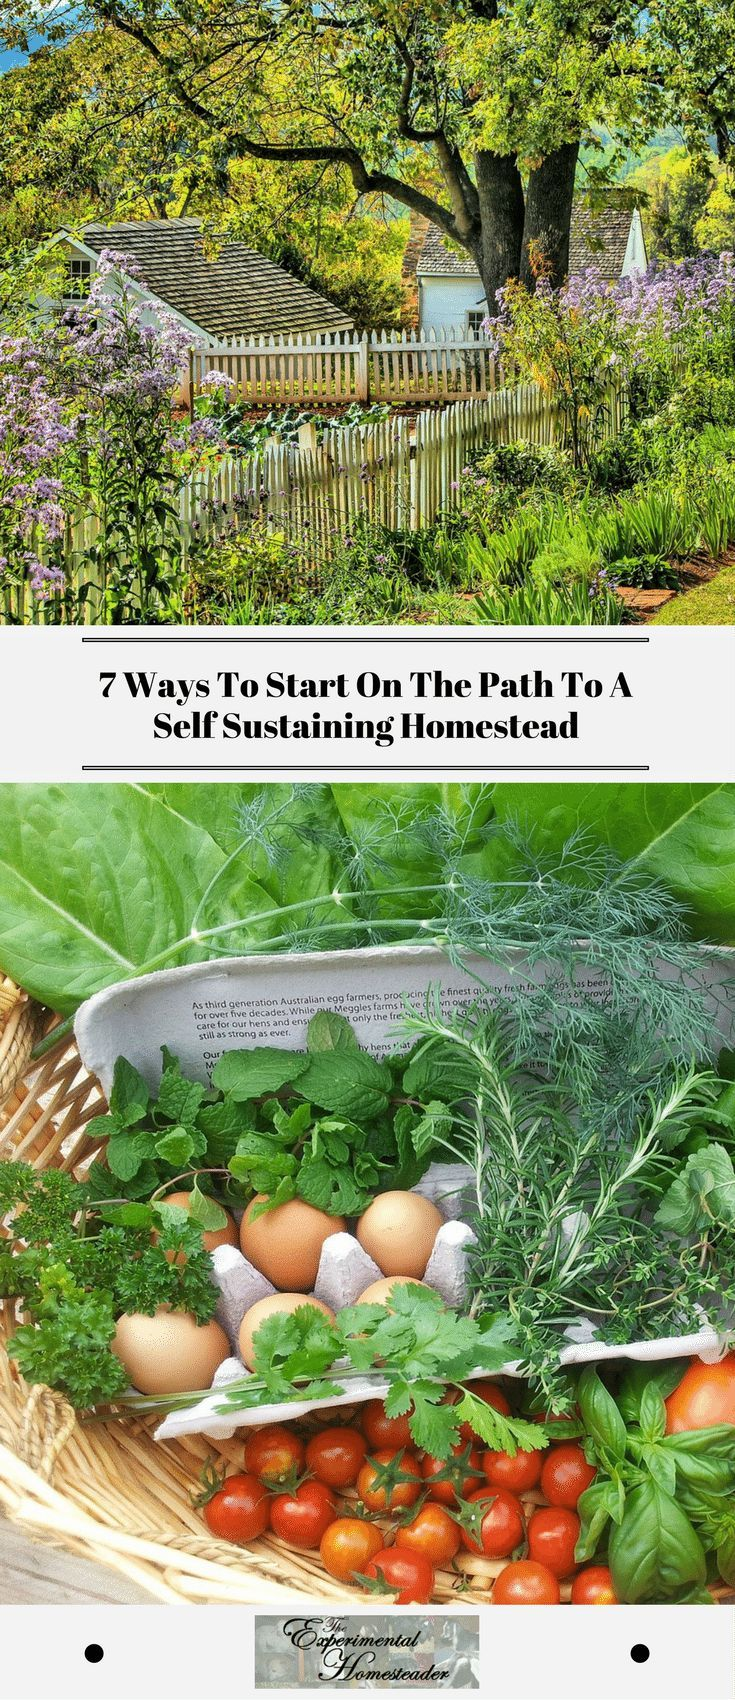 7 Ways To Start On The Path To A Self Sustaining Homestead